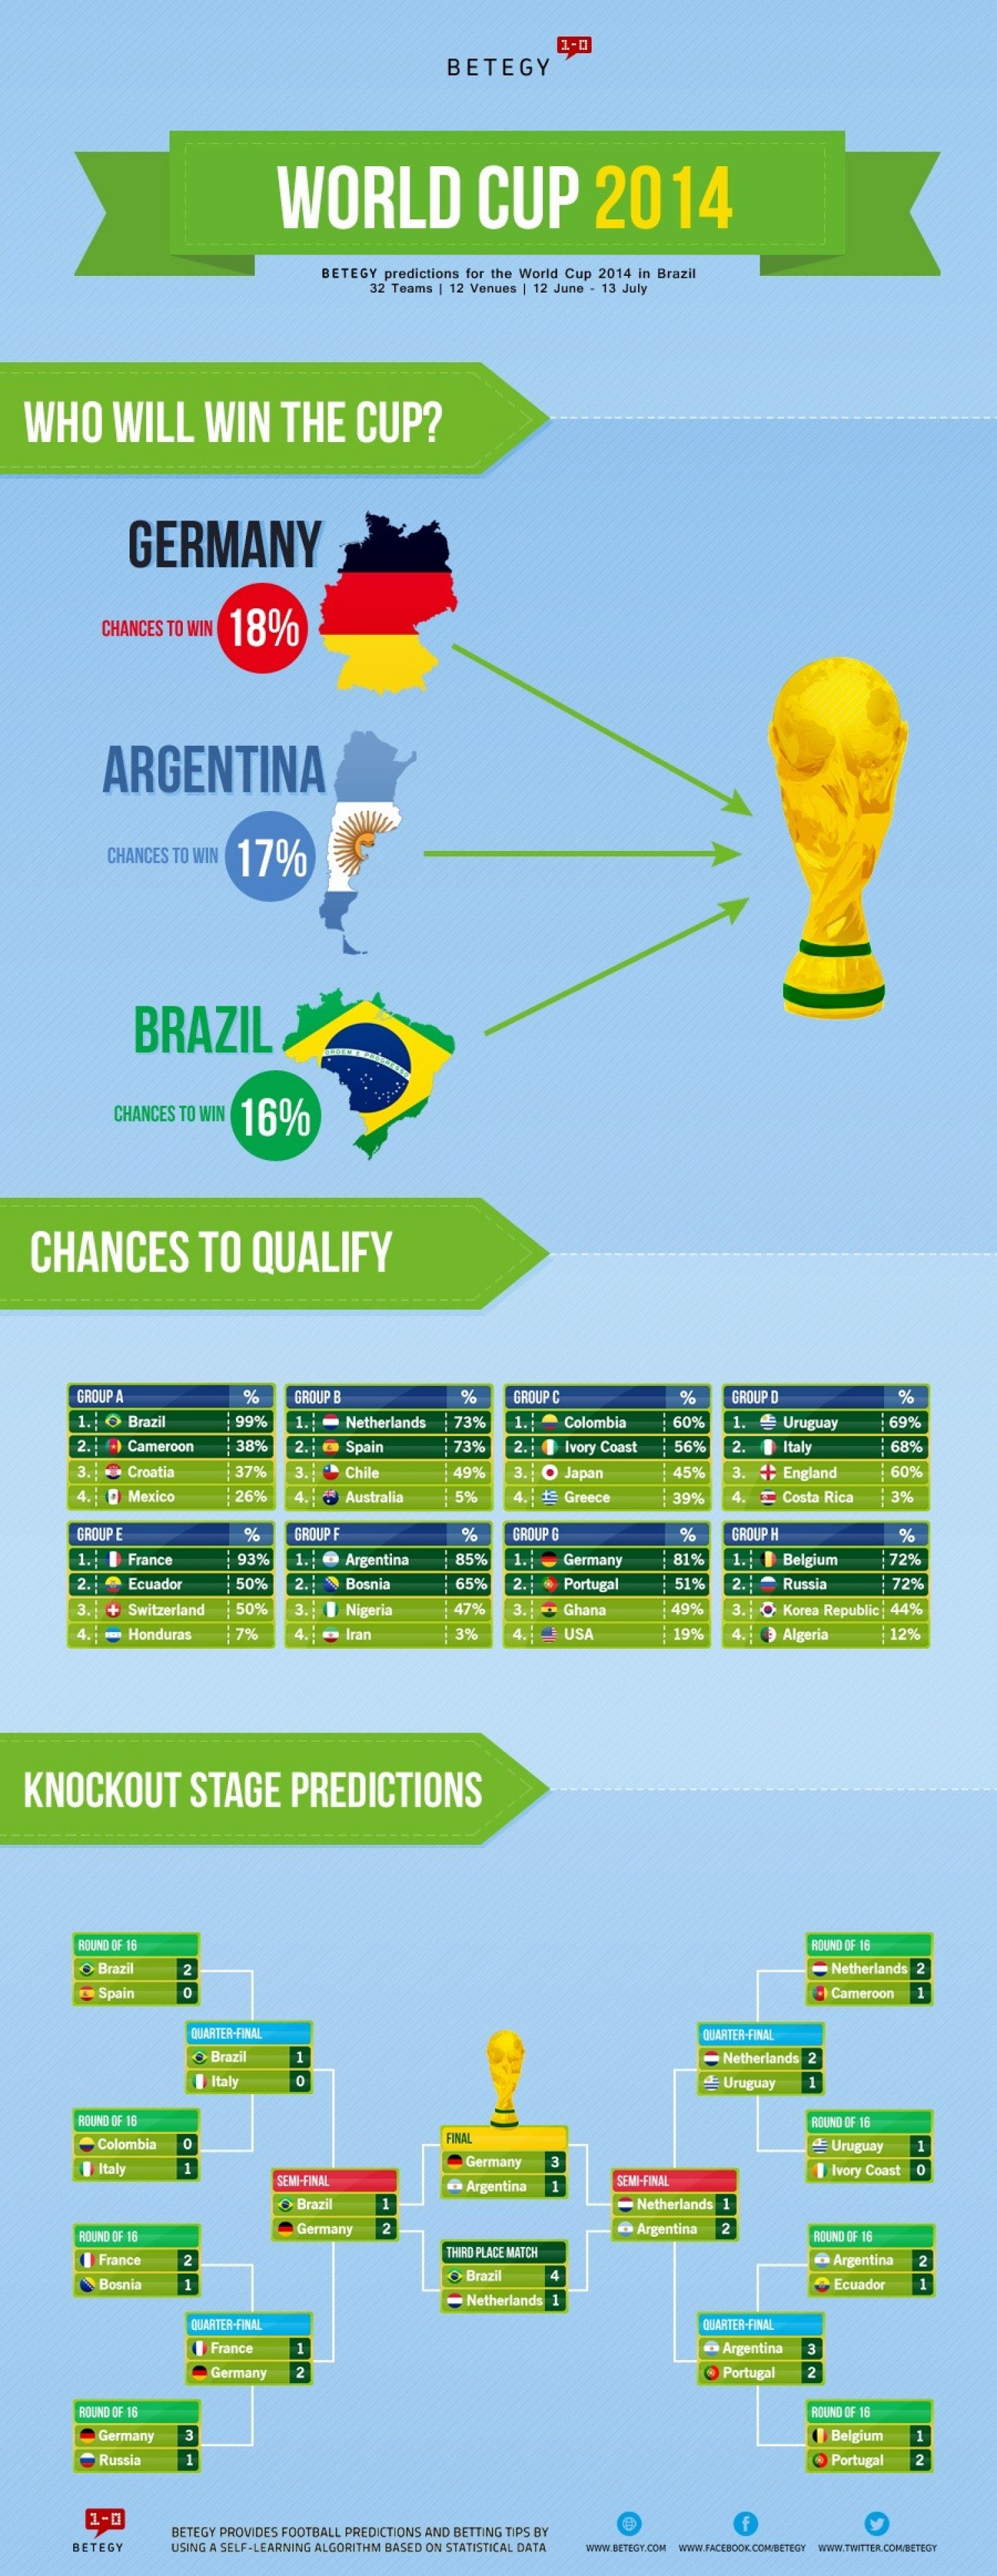 Predictions for World Cup 2014 in Brazil Infographic